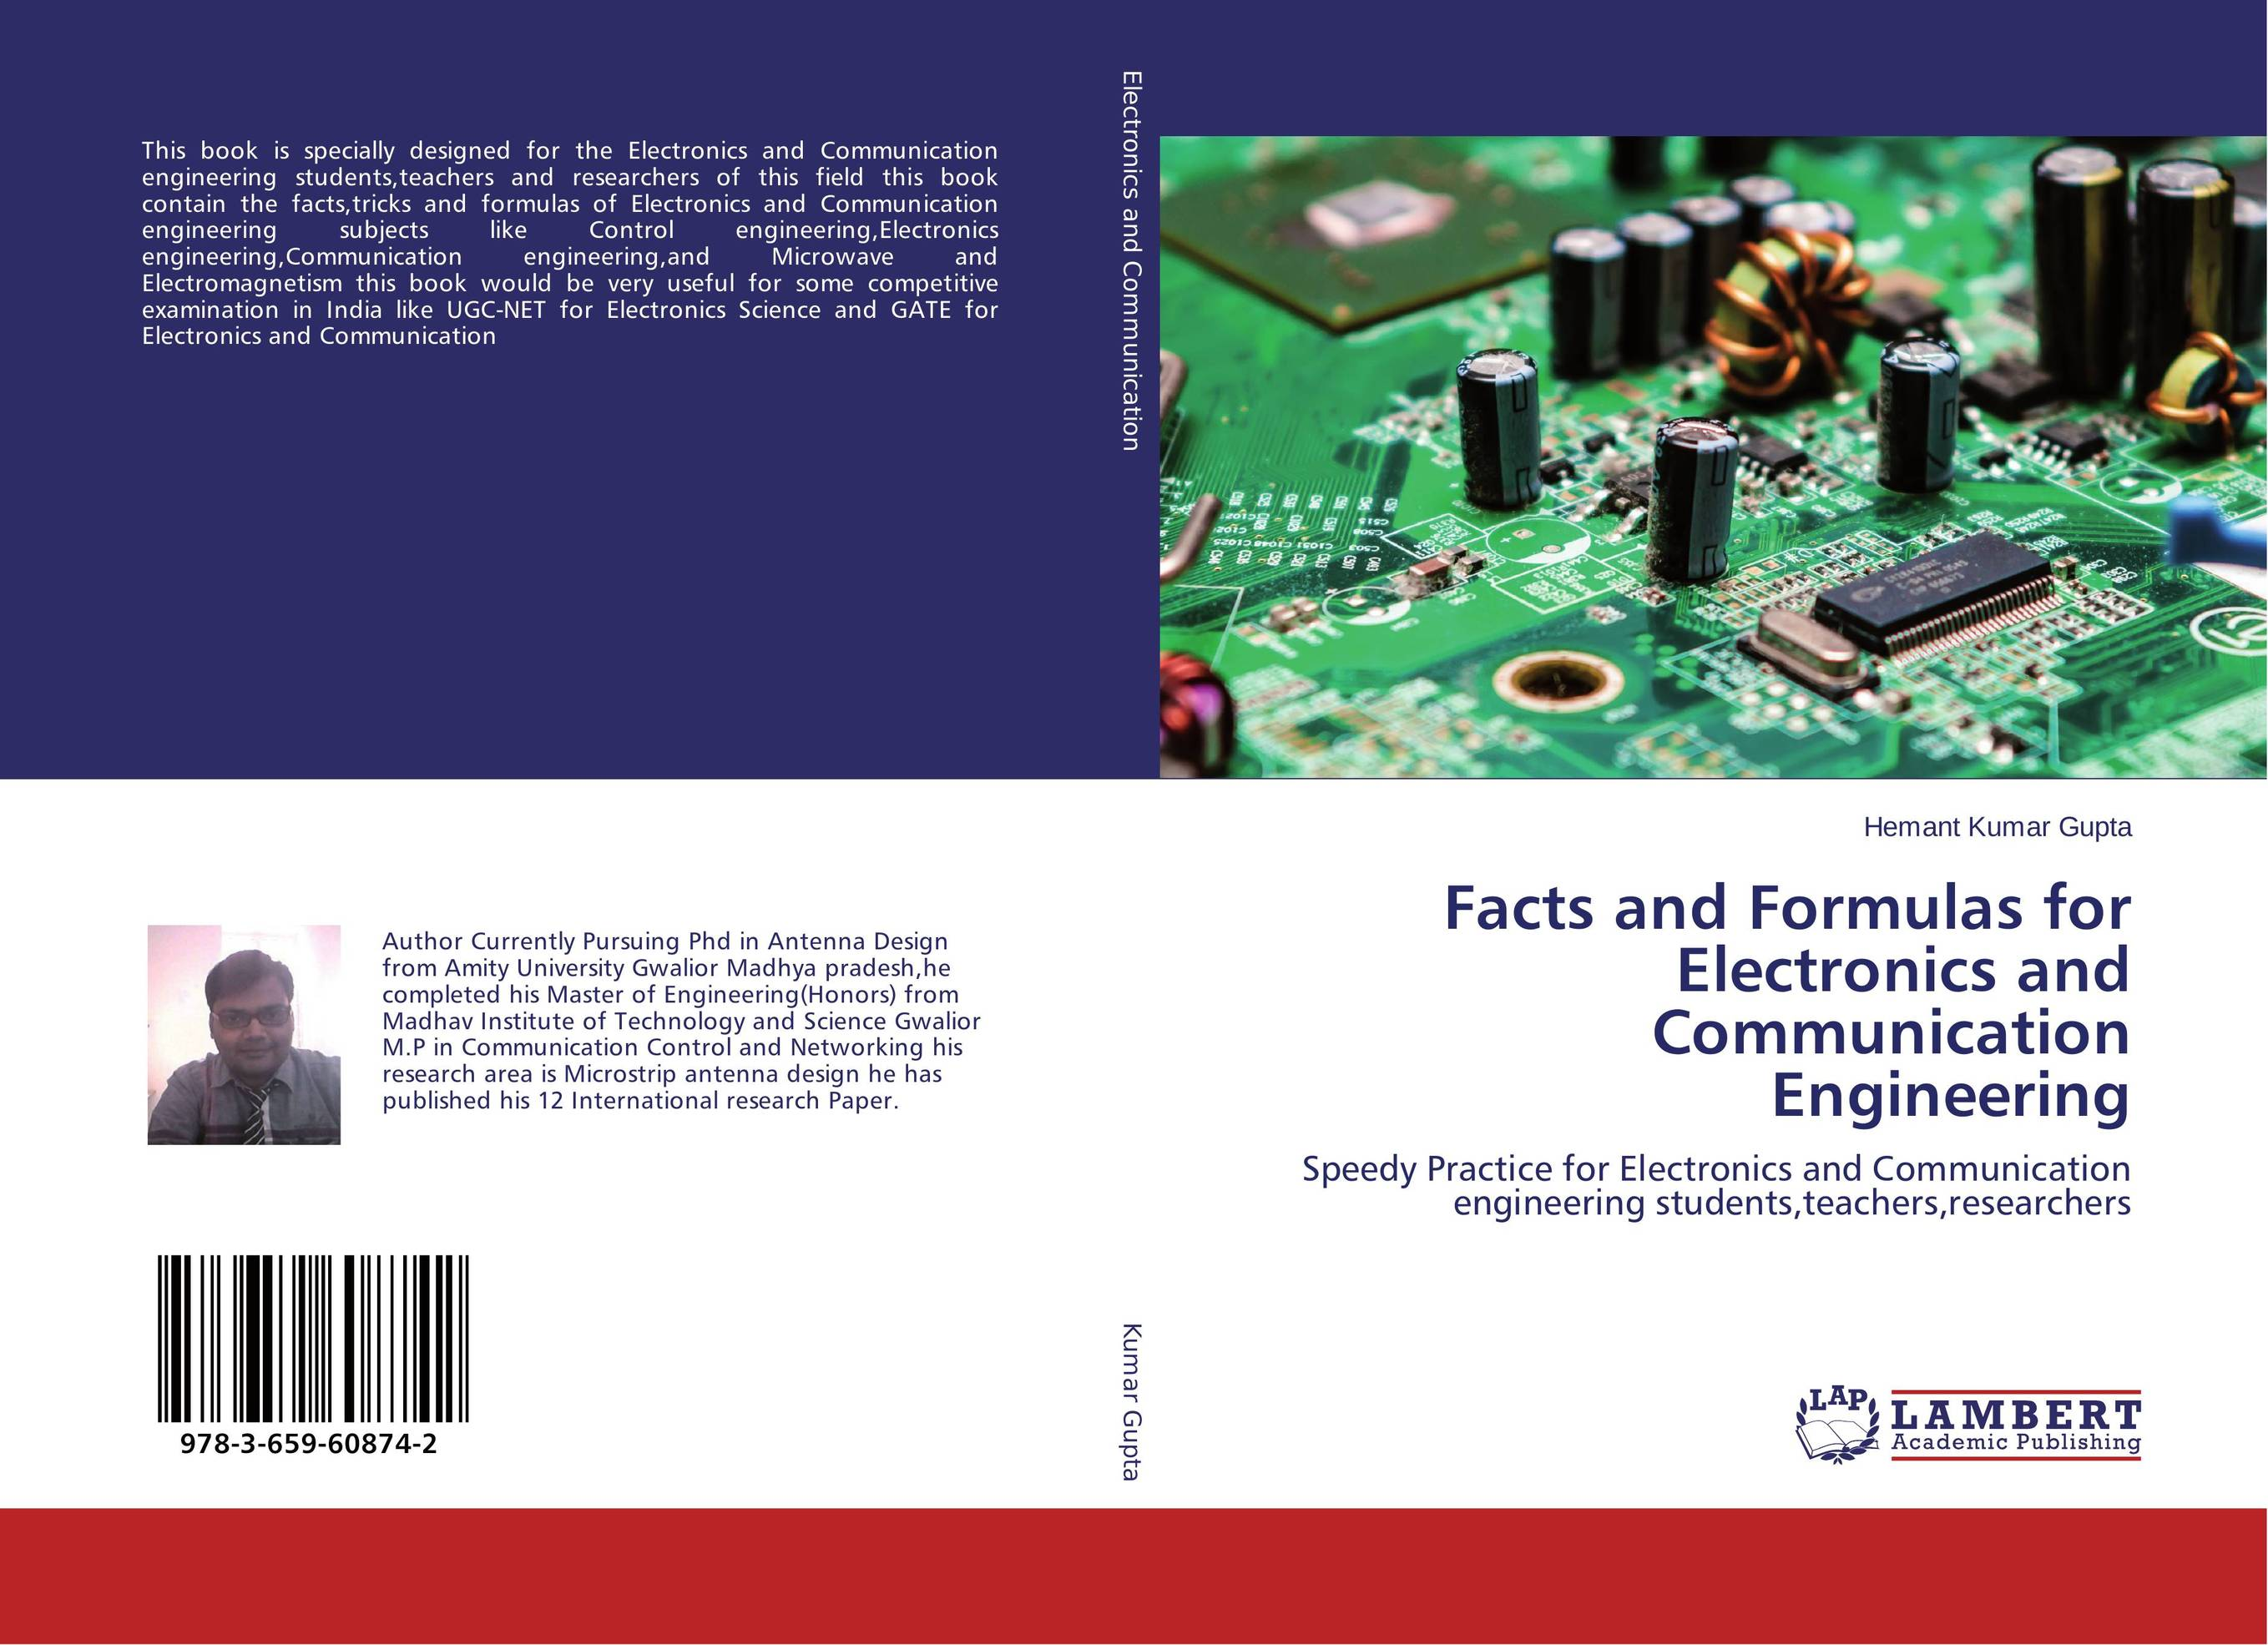 Facts and Formulas for Electronics and Communication Engineering marital communication